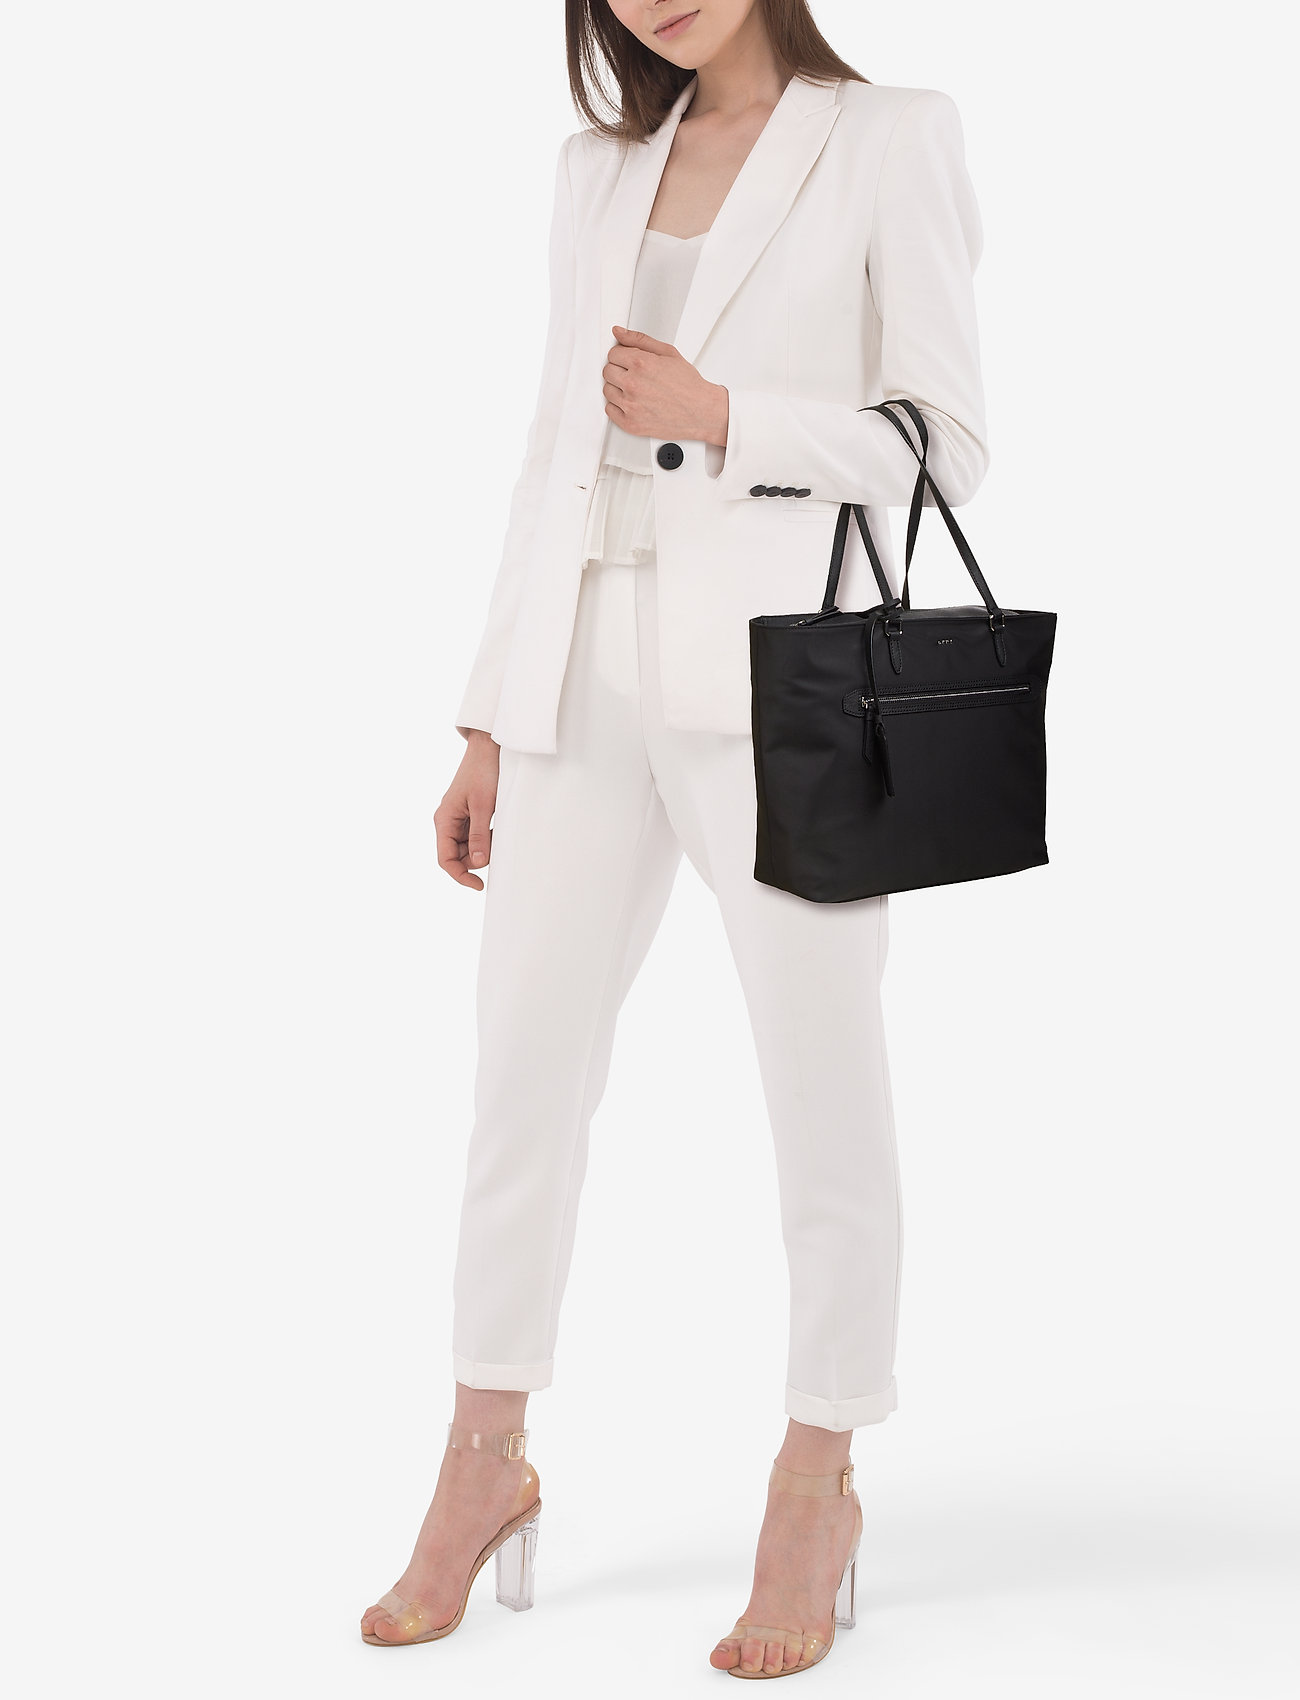 DKNY Bags CASEY- LARGE TOTE - BLACK/SILVER